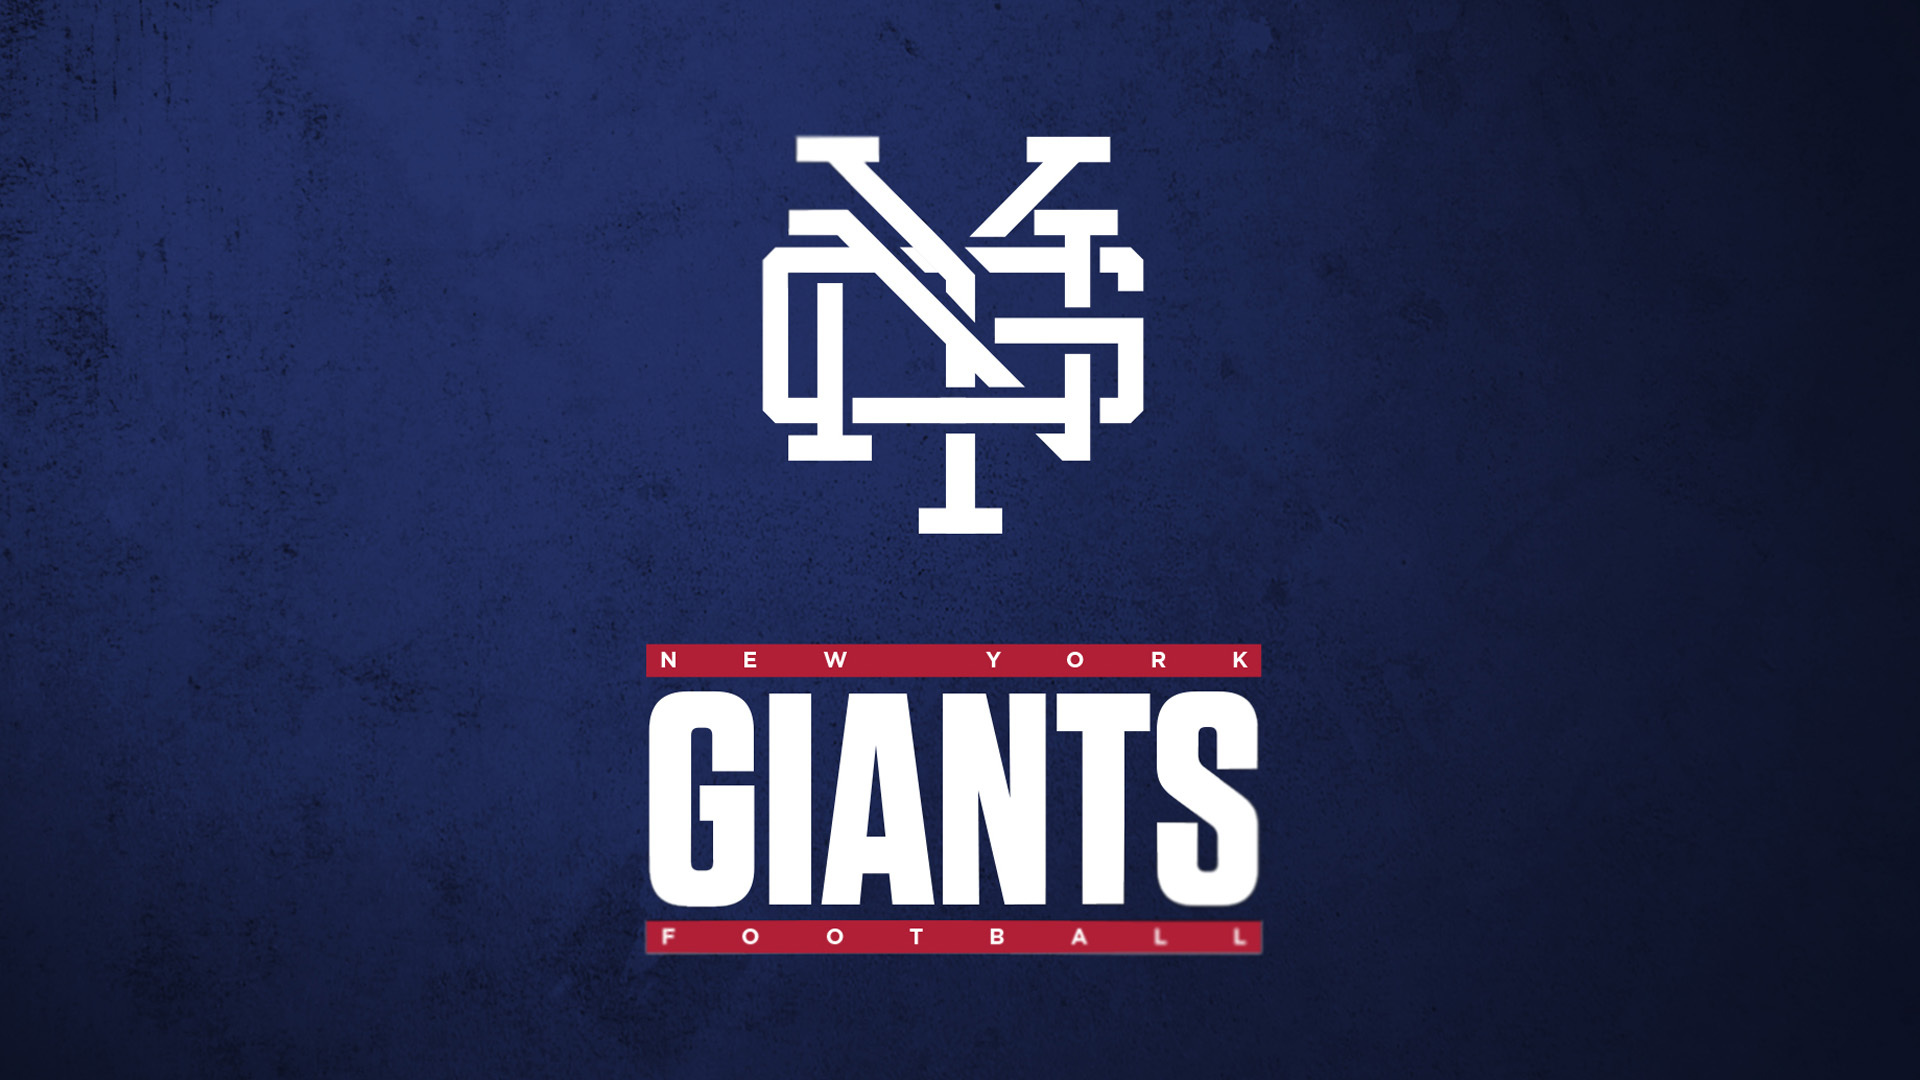 New York Giants Pictures